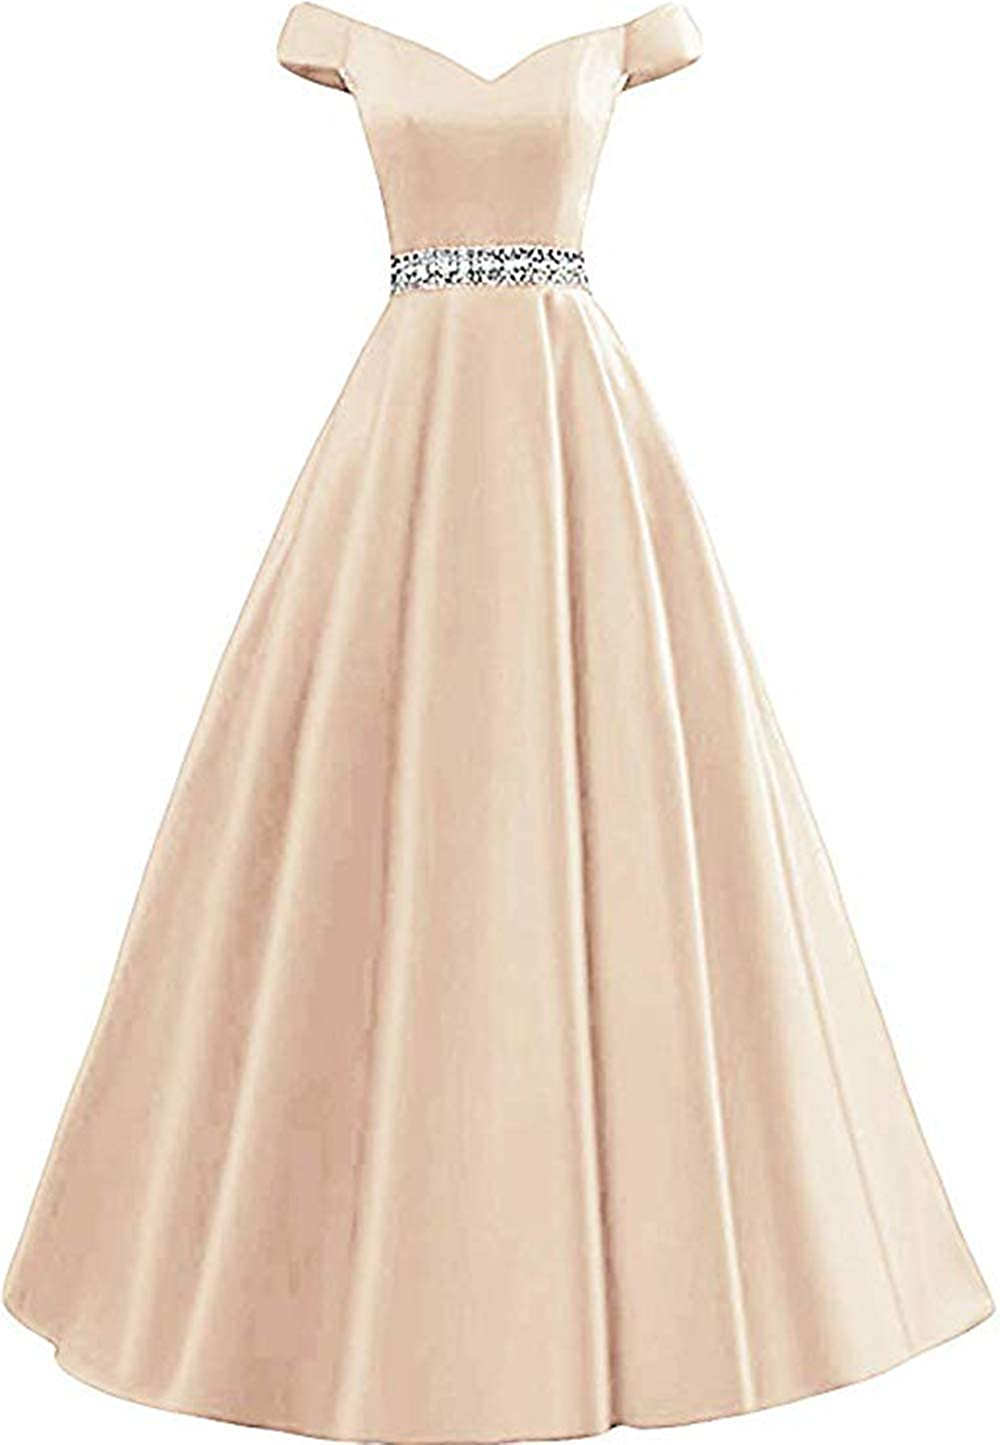 Champagne Rmaytiked Women's Off Shoulder Prom Dresses Long 2019 Satin Beaded A Line Formal Evening Ball Gowns with Pockets